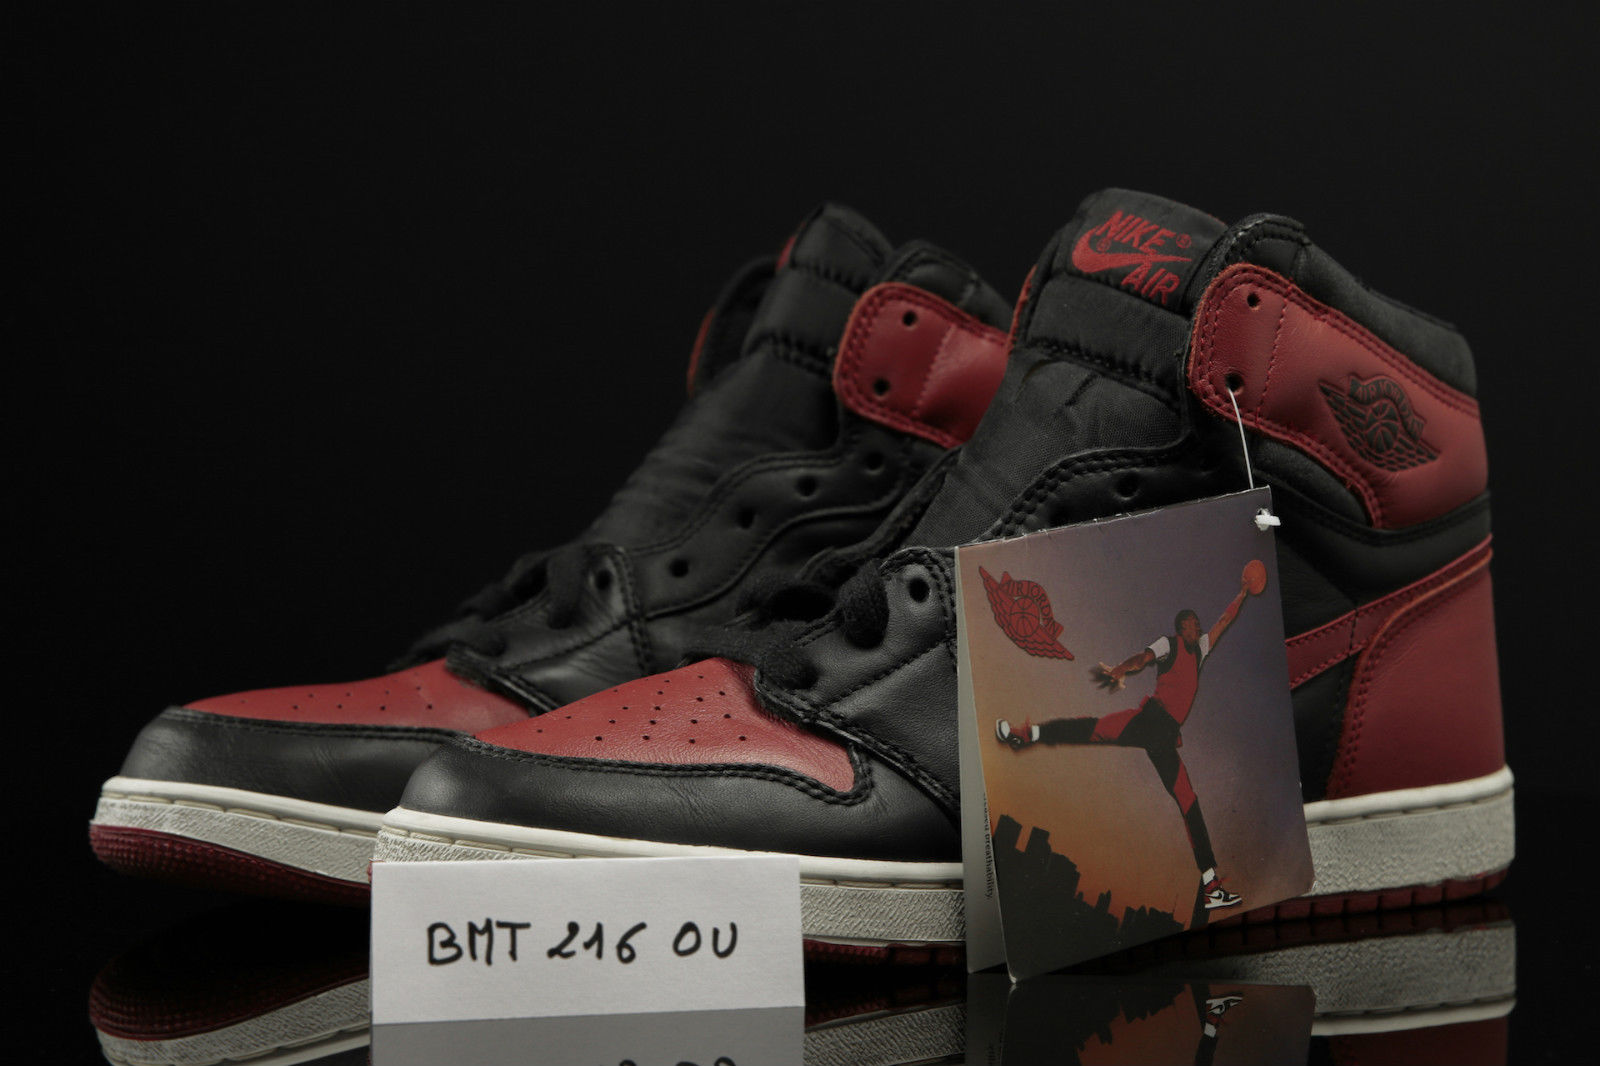 separation shoes bfecb f6549 The 23 Most Rare and Expensive Air Jordans on eBay Right Now